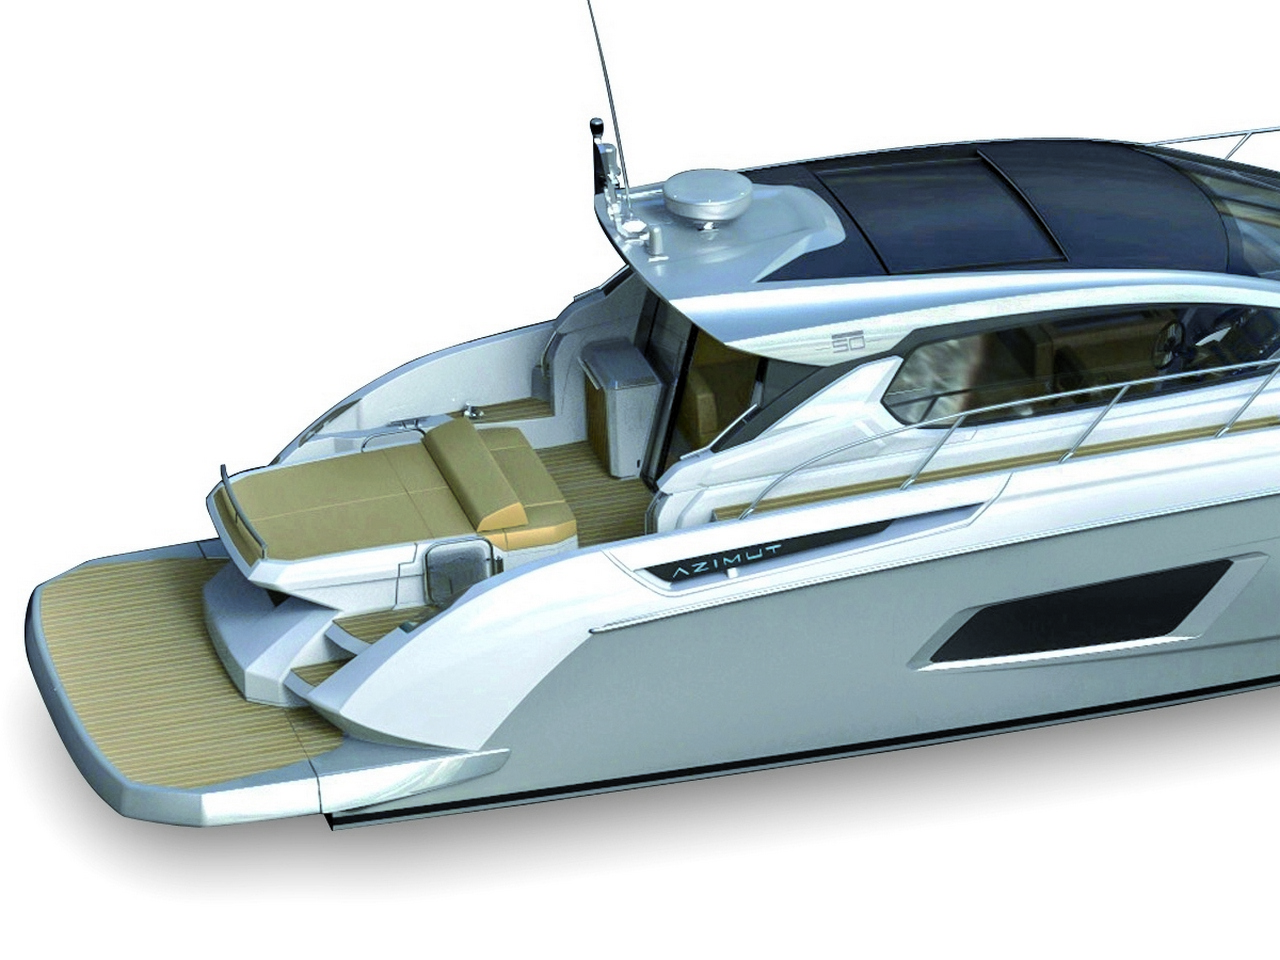 azimut-atlantis-50-open-e-coupe_0-100_4